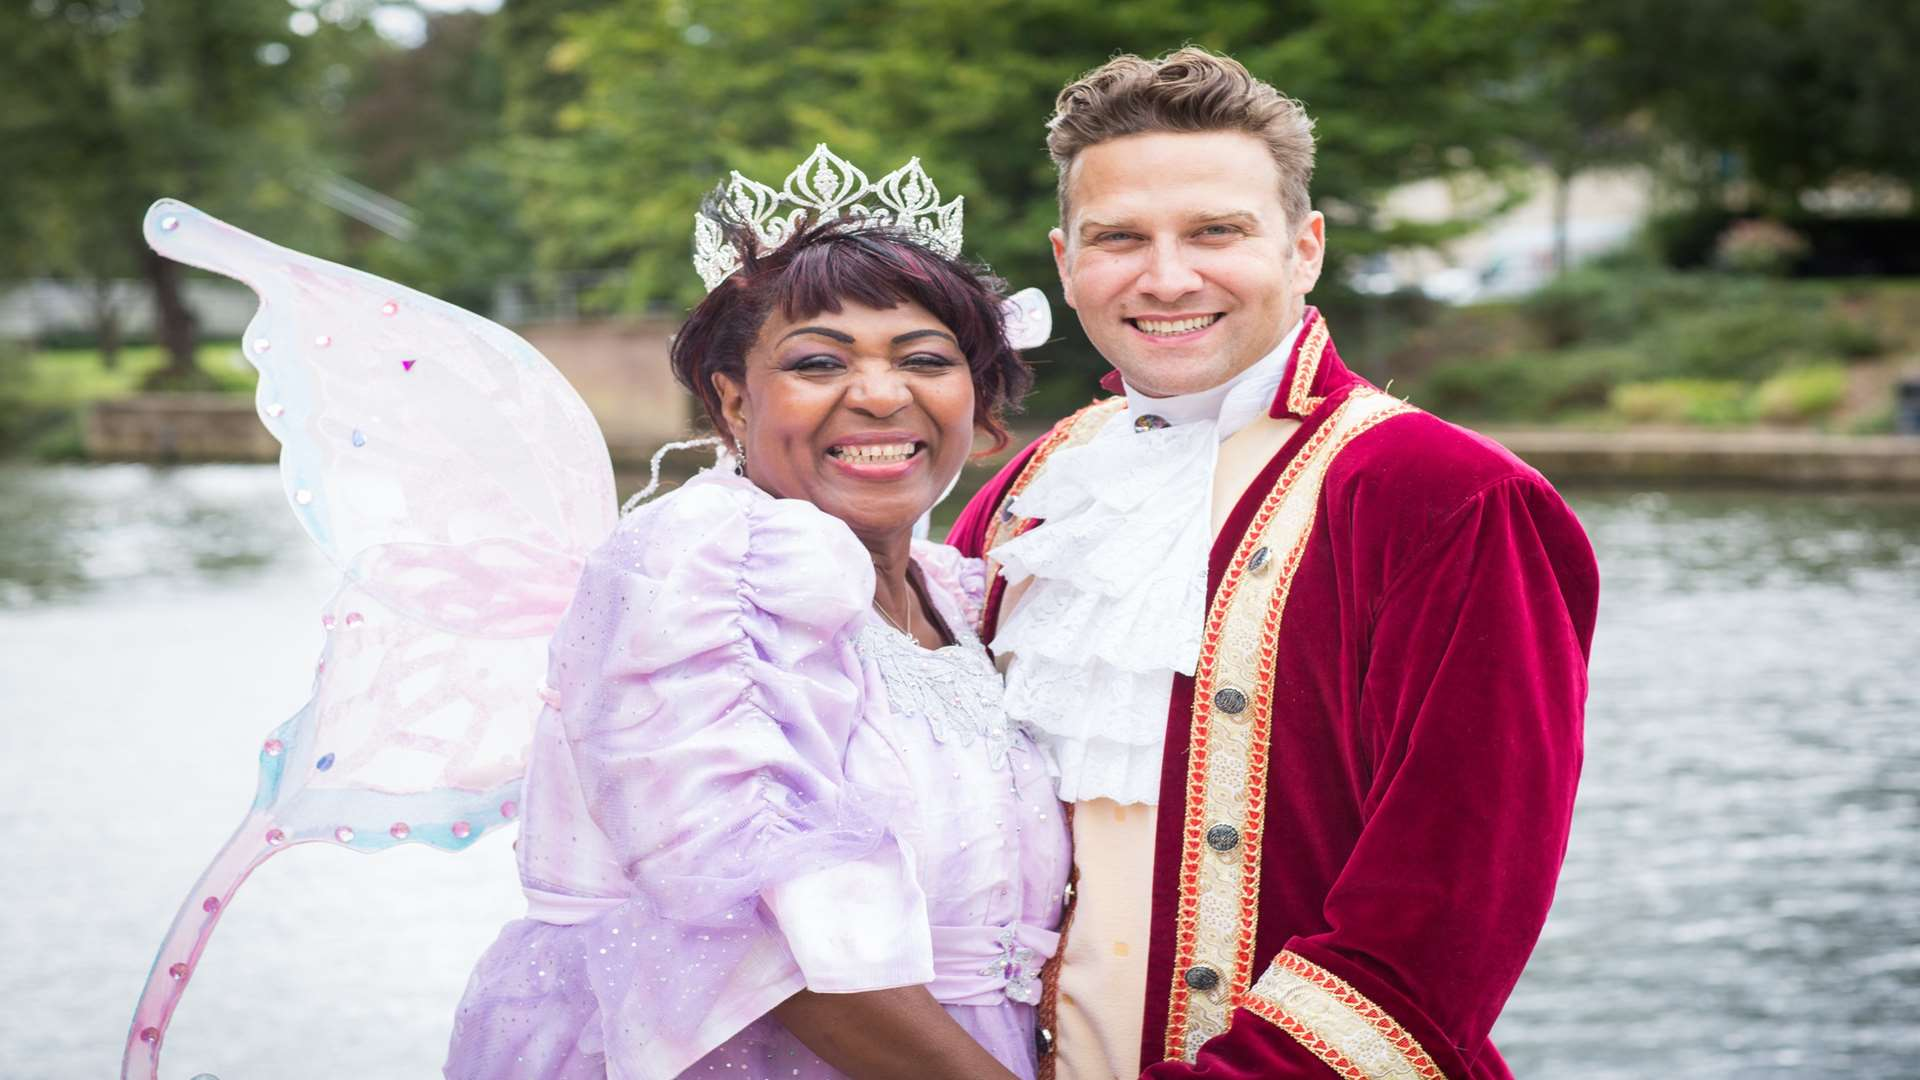 Stars of the Hazlitt's panto this year, Rustie Lee and Stefan Booth